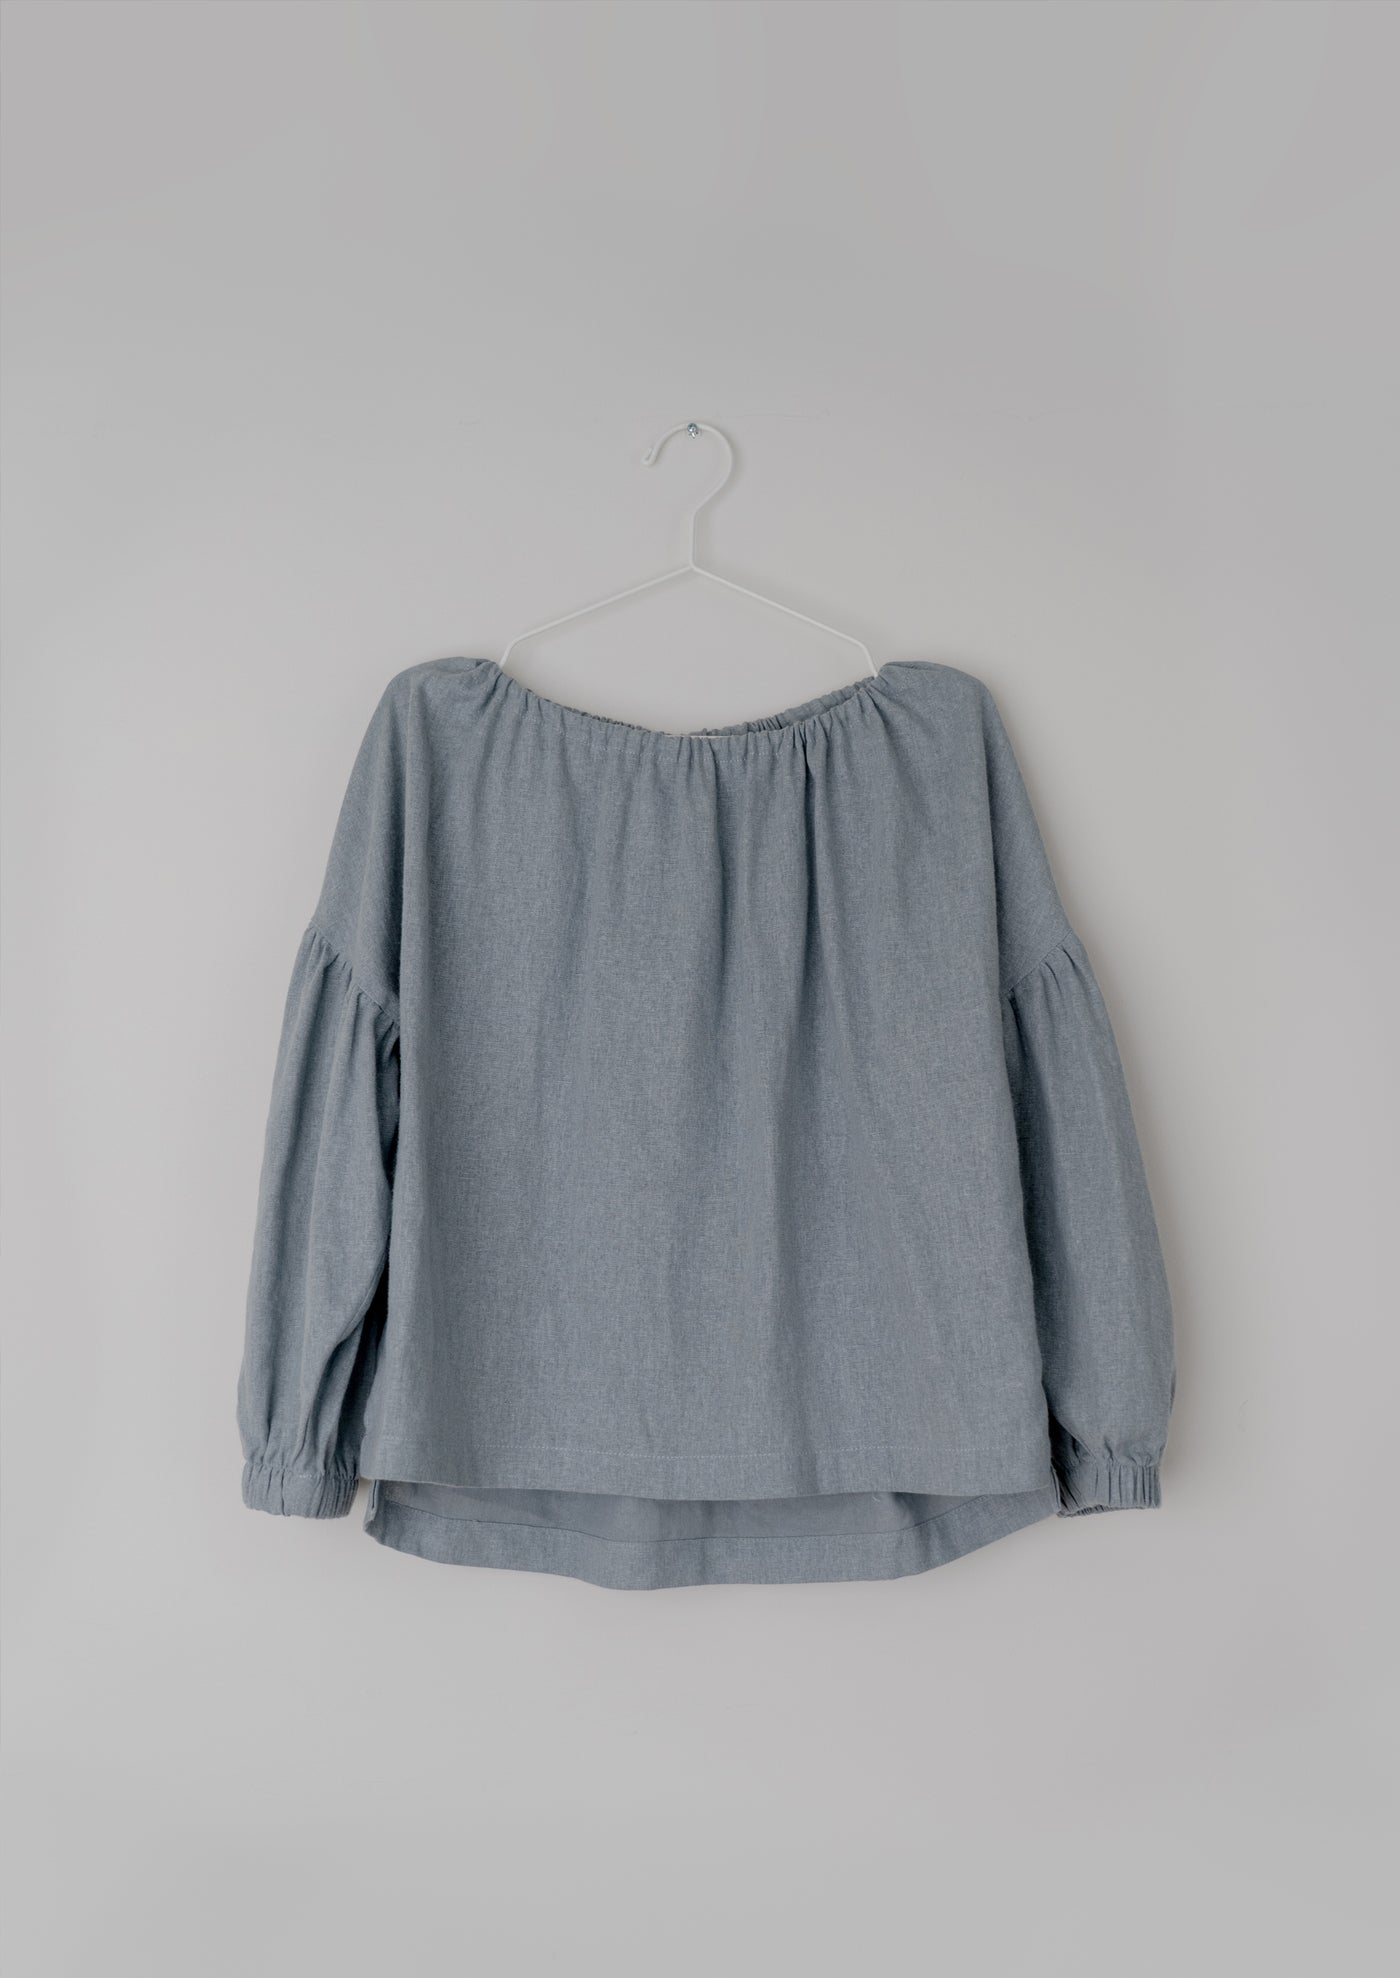 Vivendi Top ¦ Blue